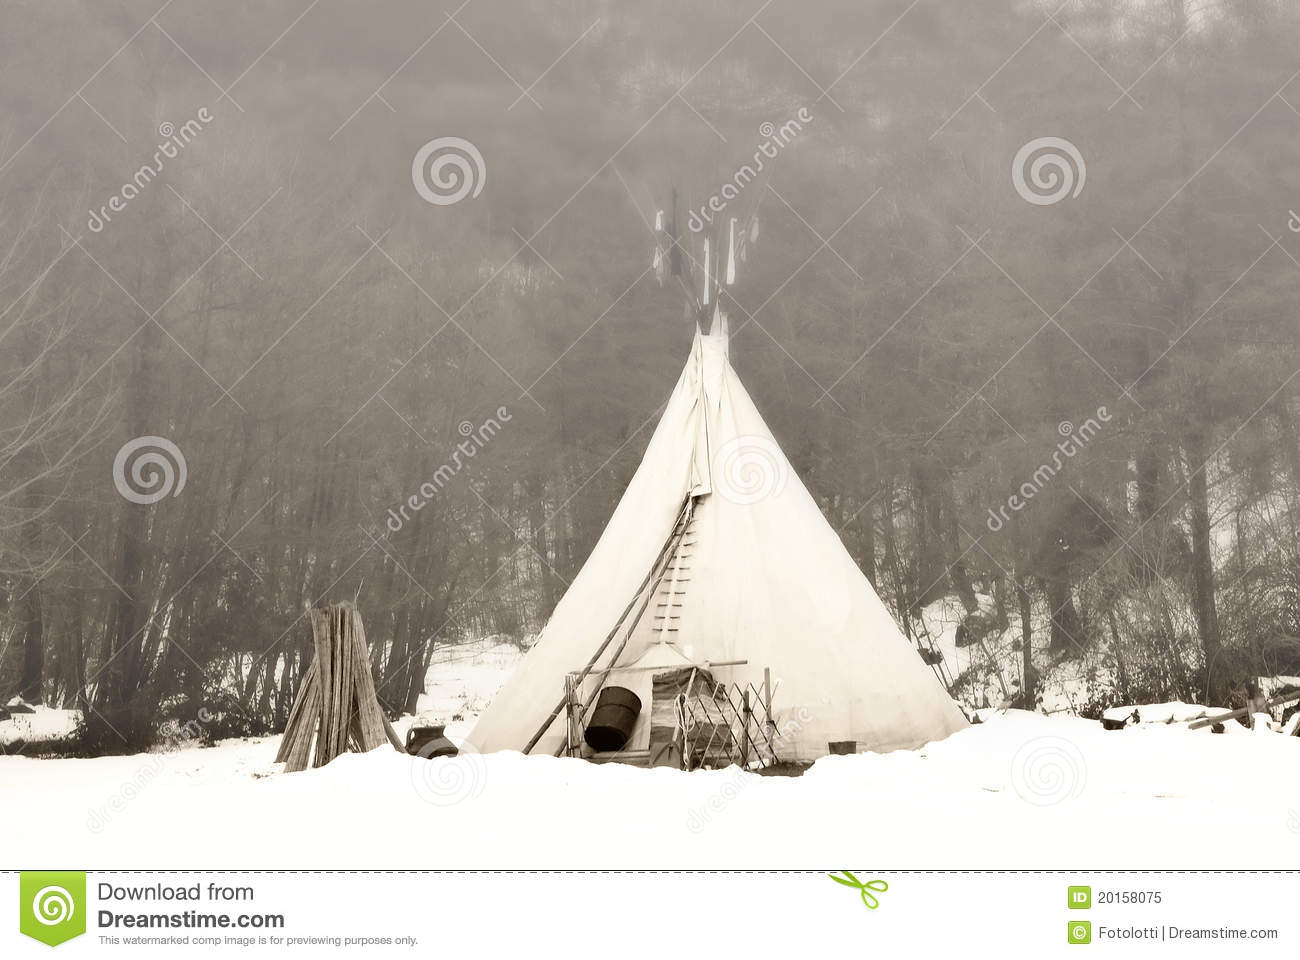 Tent of the Indian